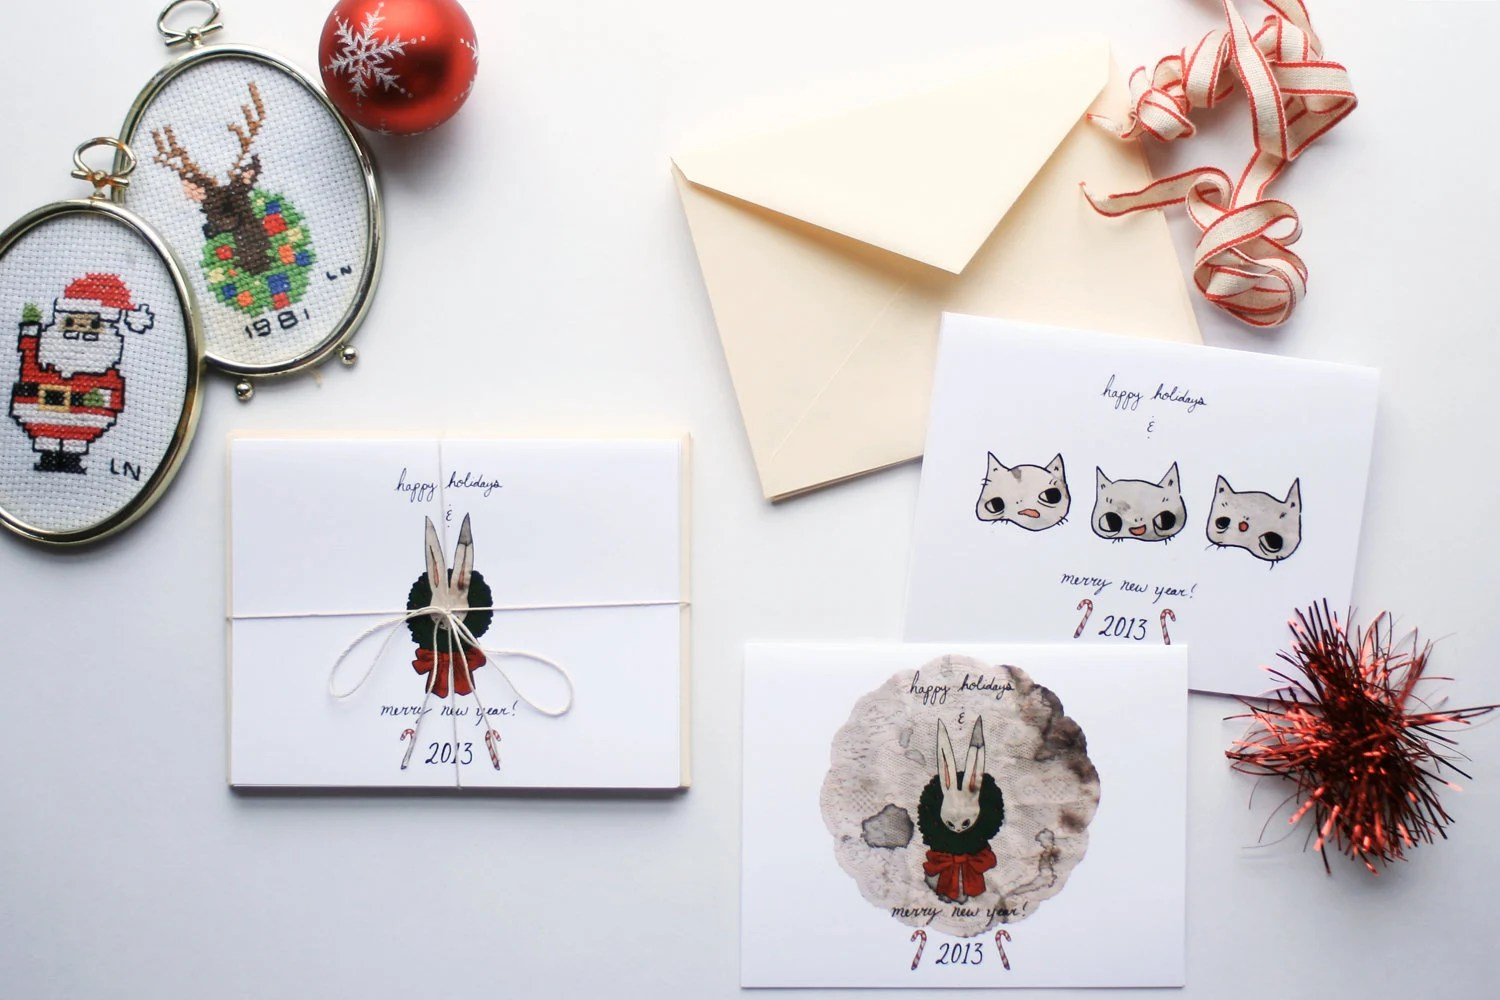 Holiday Greeting Card Set, Limited Edition - Cats, Rabbit, and Doily 2013 Christmas & New Years Cards - beyourpet